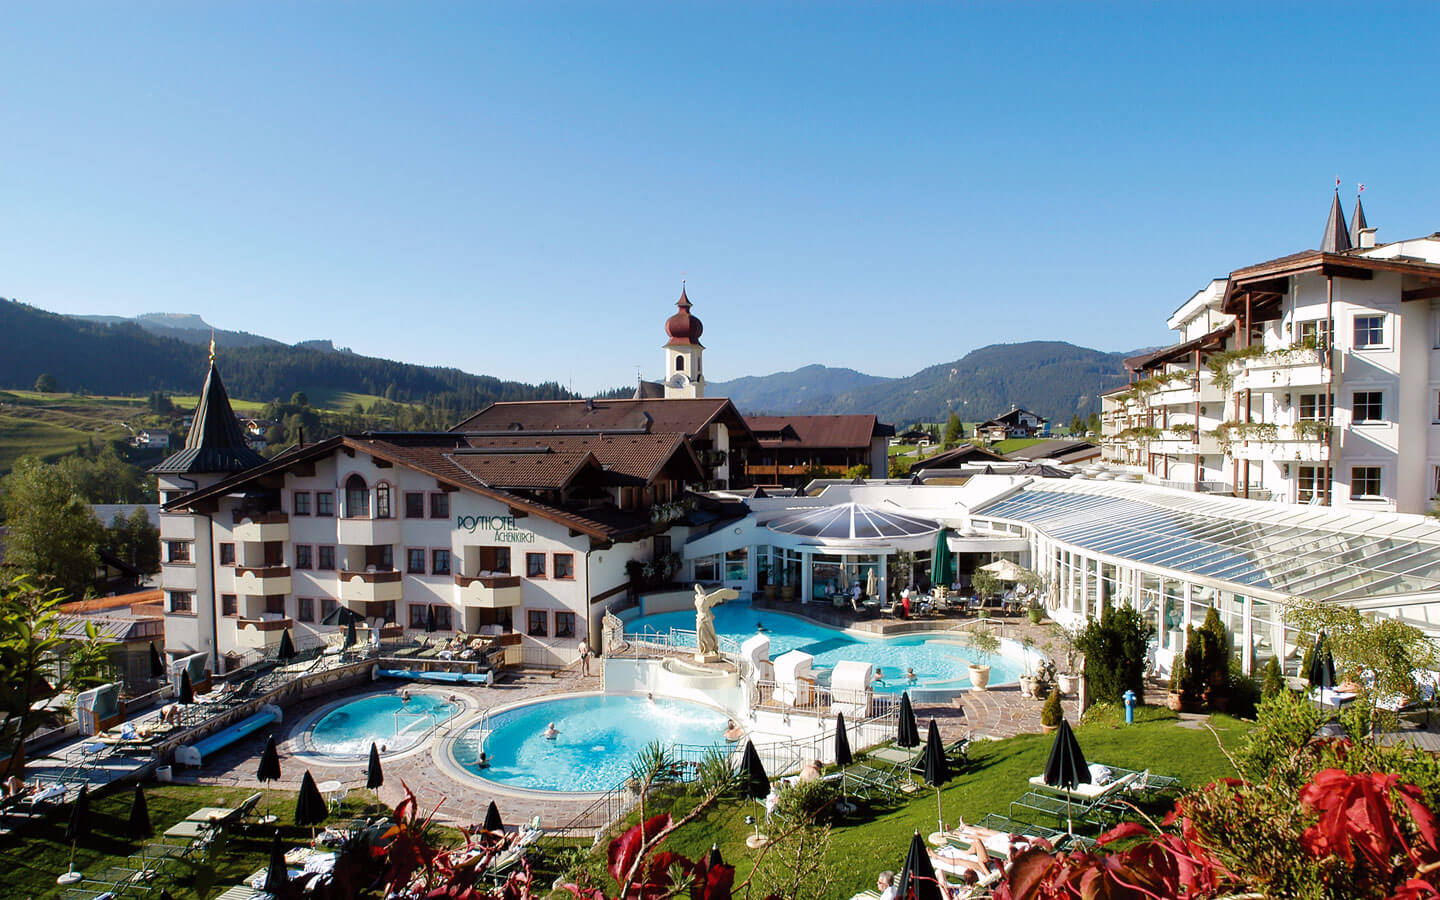 A beautiful hotel in Austria with outdoor swimming pool